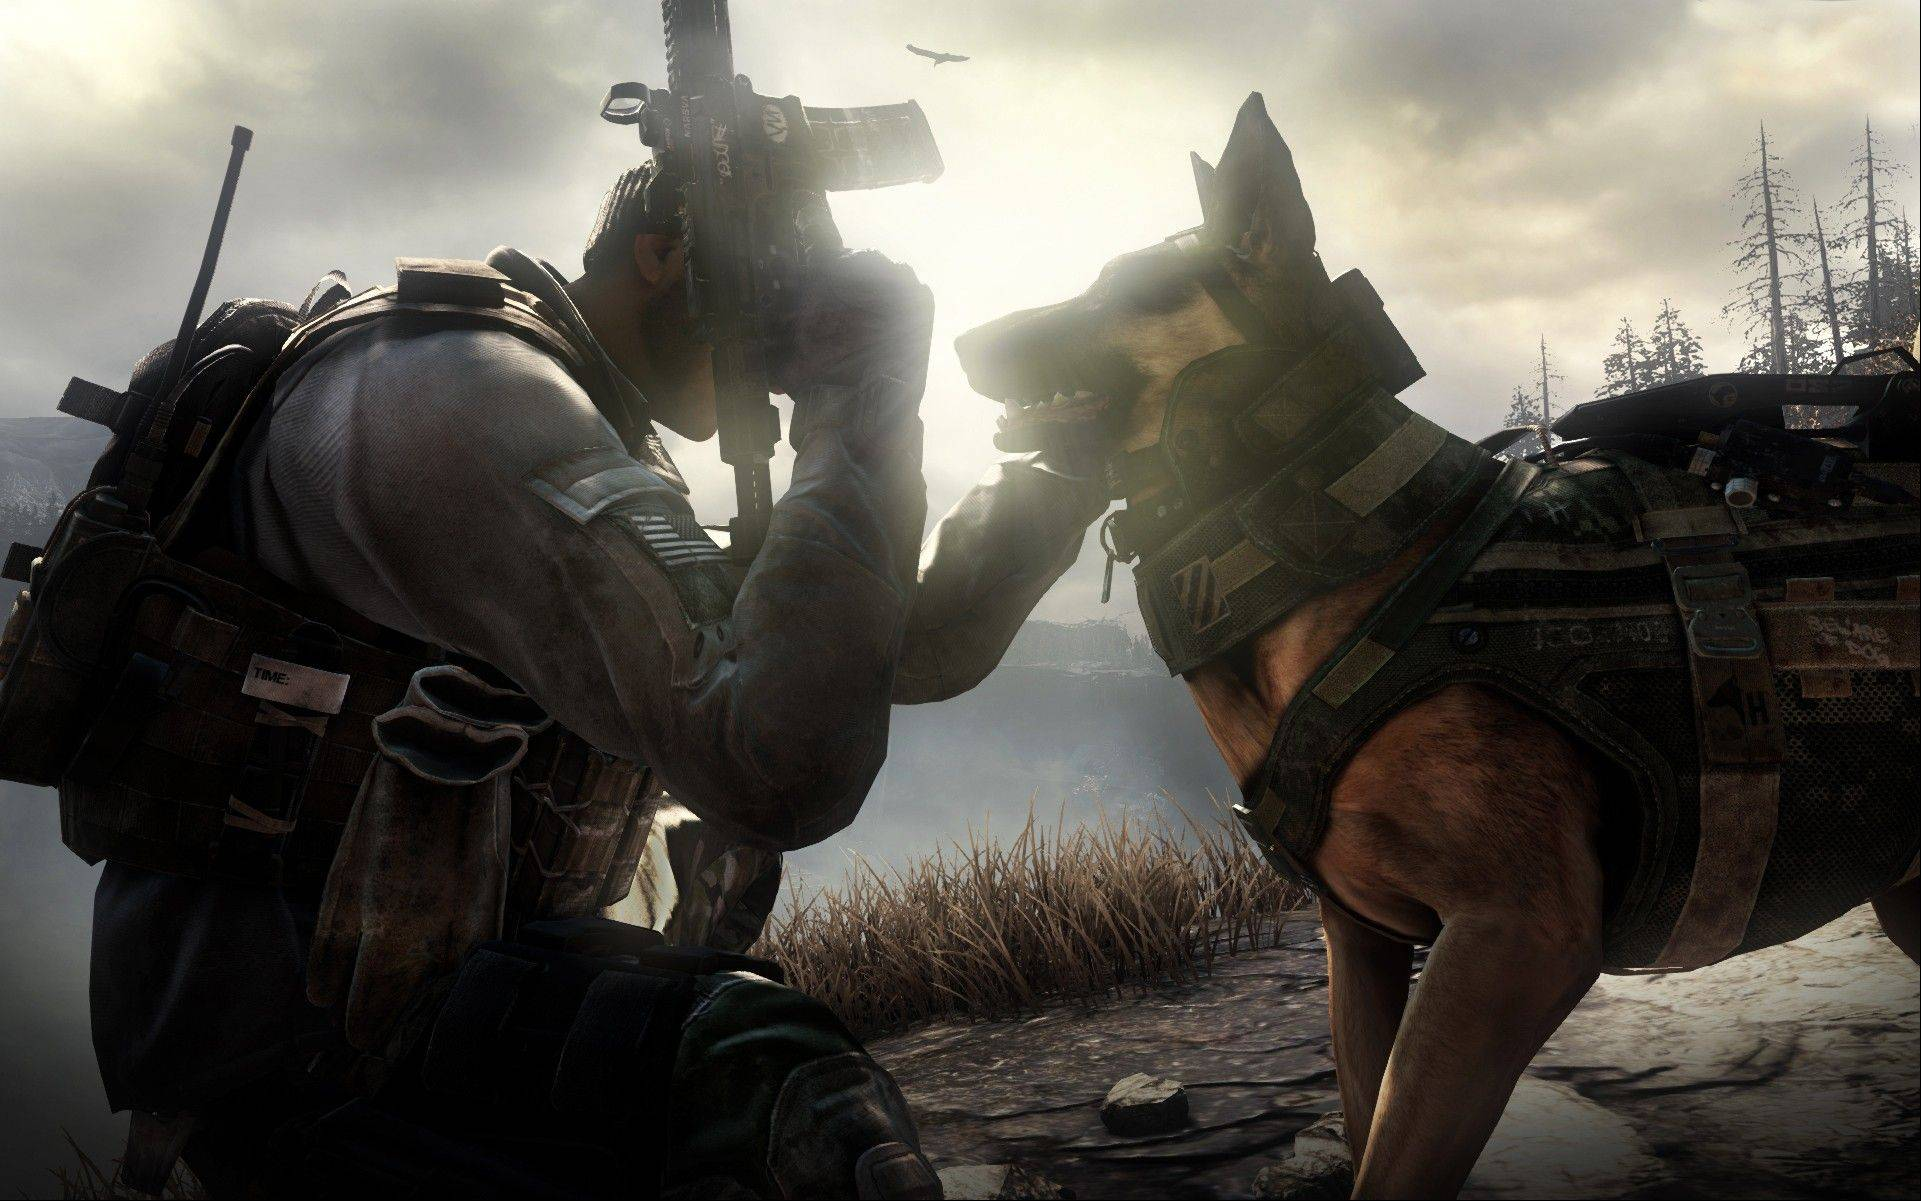 """Call of Duty: Ghosts"" isn't due until November 2013, but Riley the canine soldier has already become the breakout star of the military shoot-'em-up."